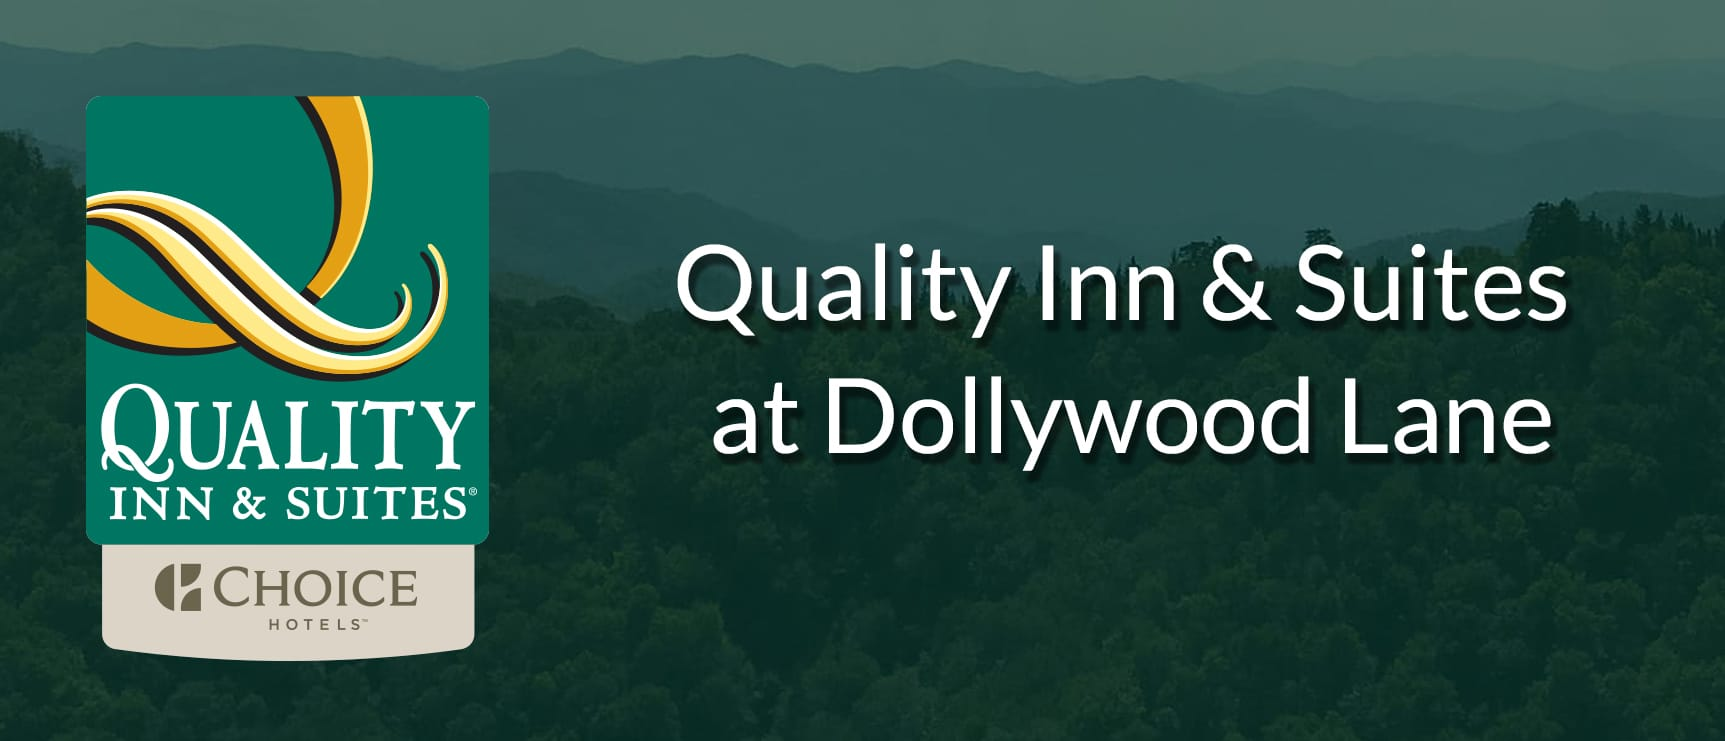 Reviews   Smoky Mountains   Comfort Inn & Suites at